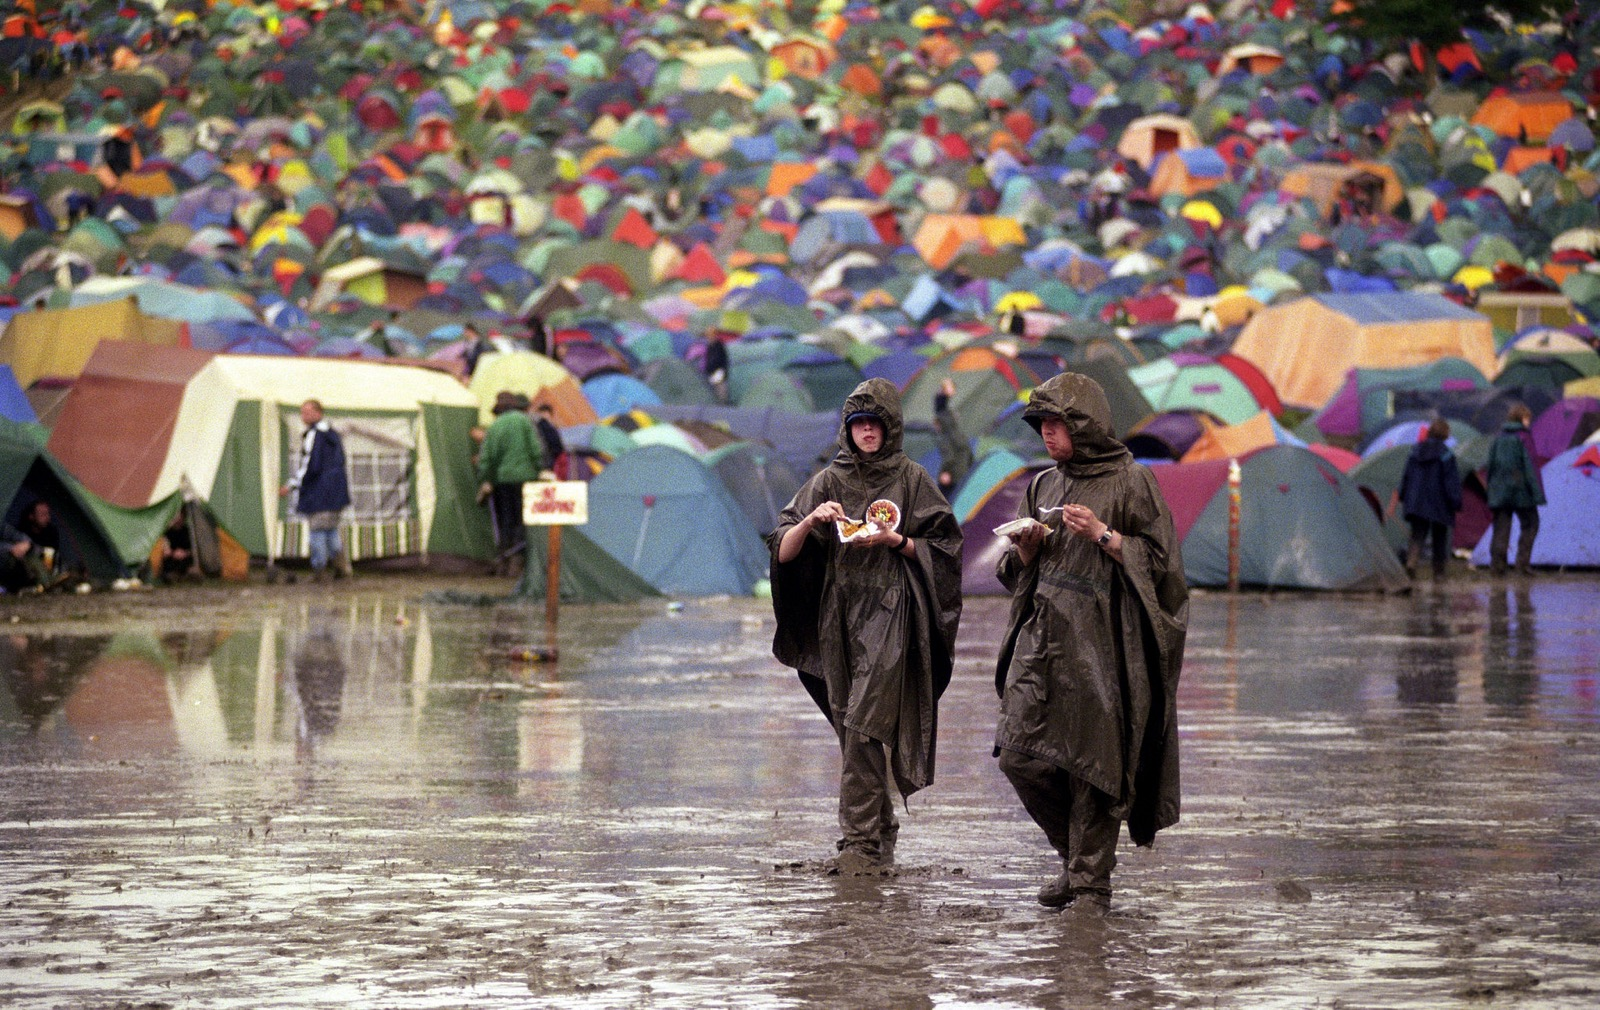 8 Tips For Preparing For Weather At Festivals